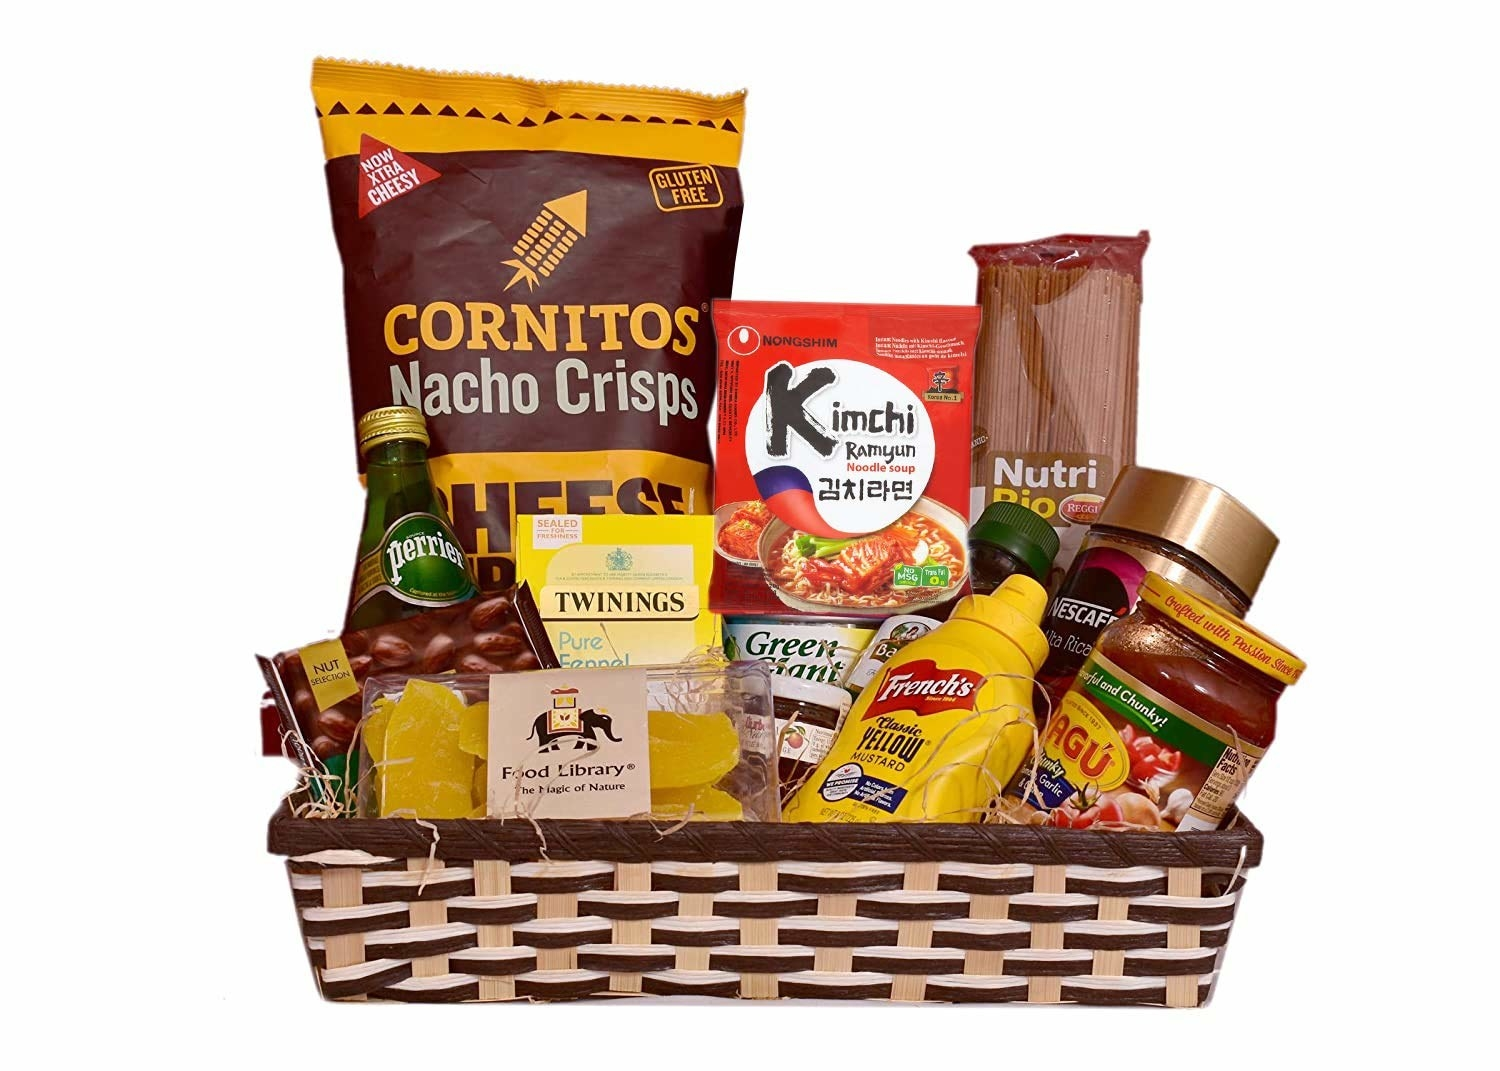 A snack hamper containing chips, pasta, ramen, chocolates, tea, coffee, and various sauces.